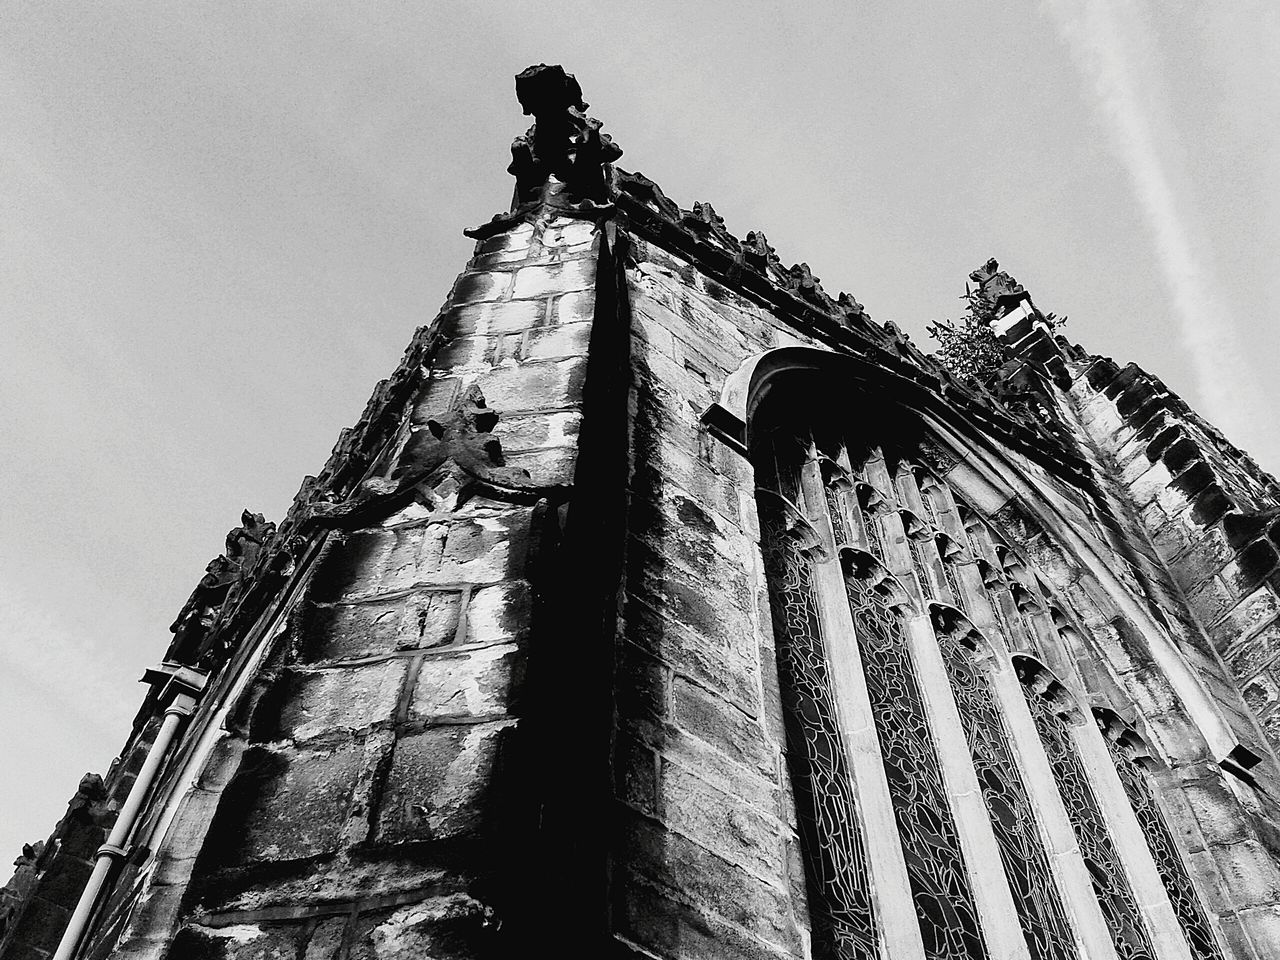 Blackandwhite Photography Gargoyles Beautiful Stonework Gothic Minister Medieval Heaven Old Churches Peaceful Place Graveyard Collection